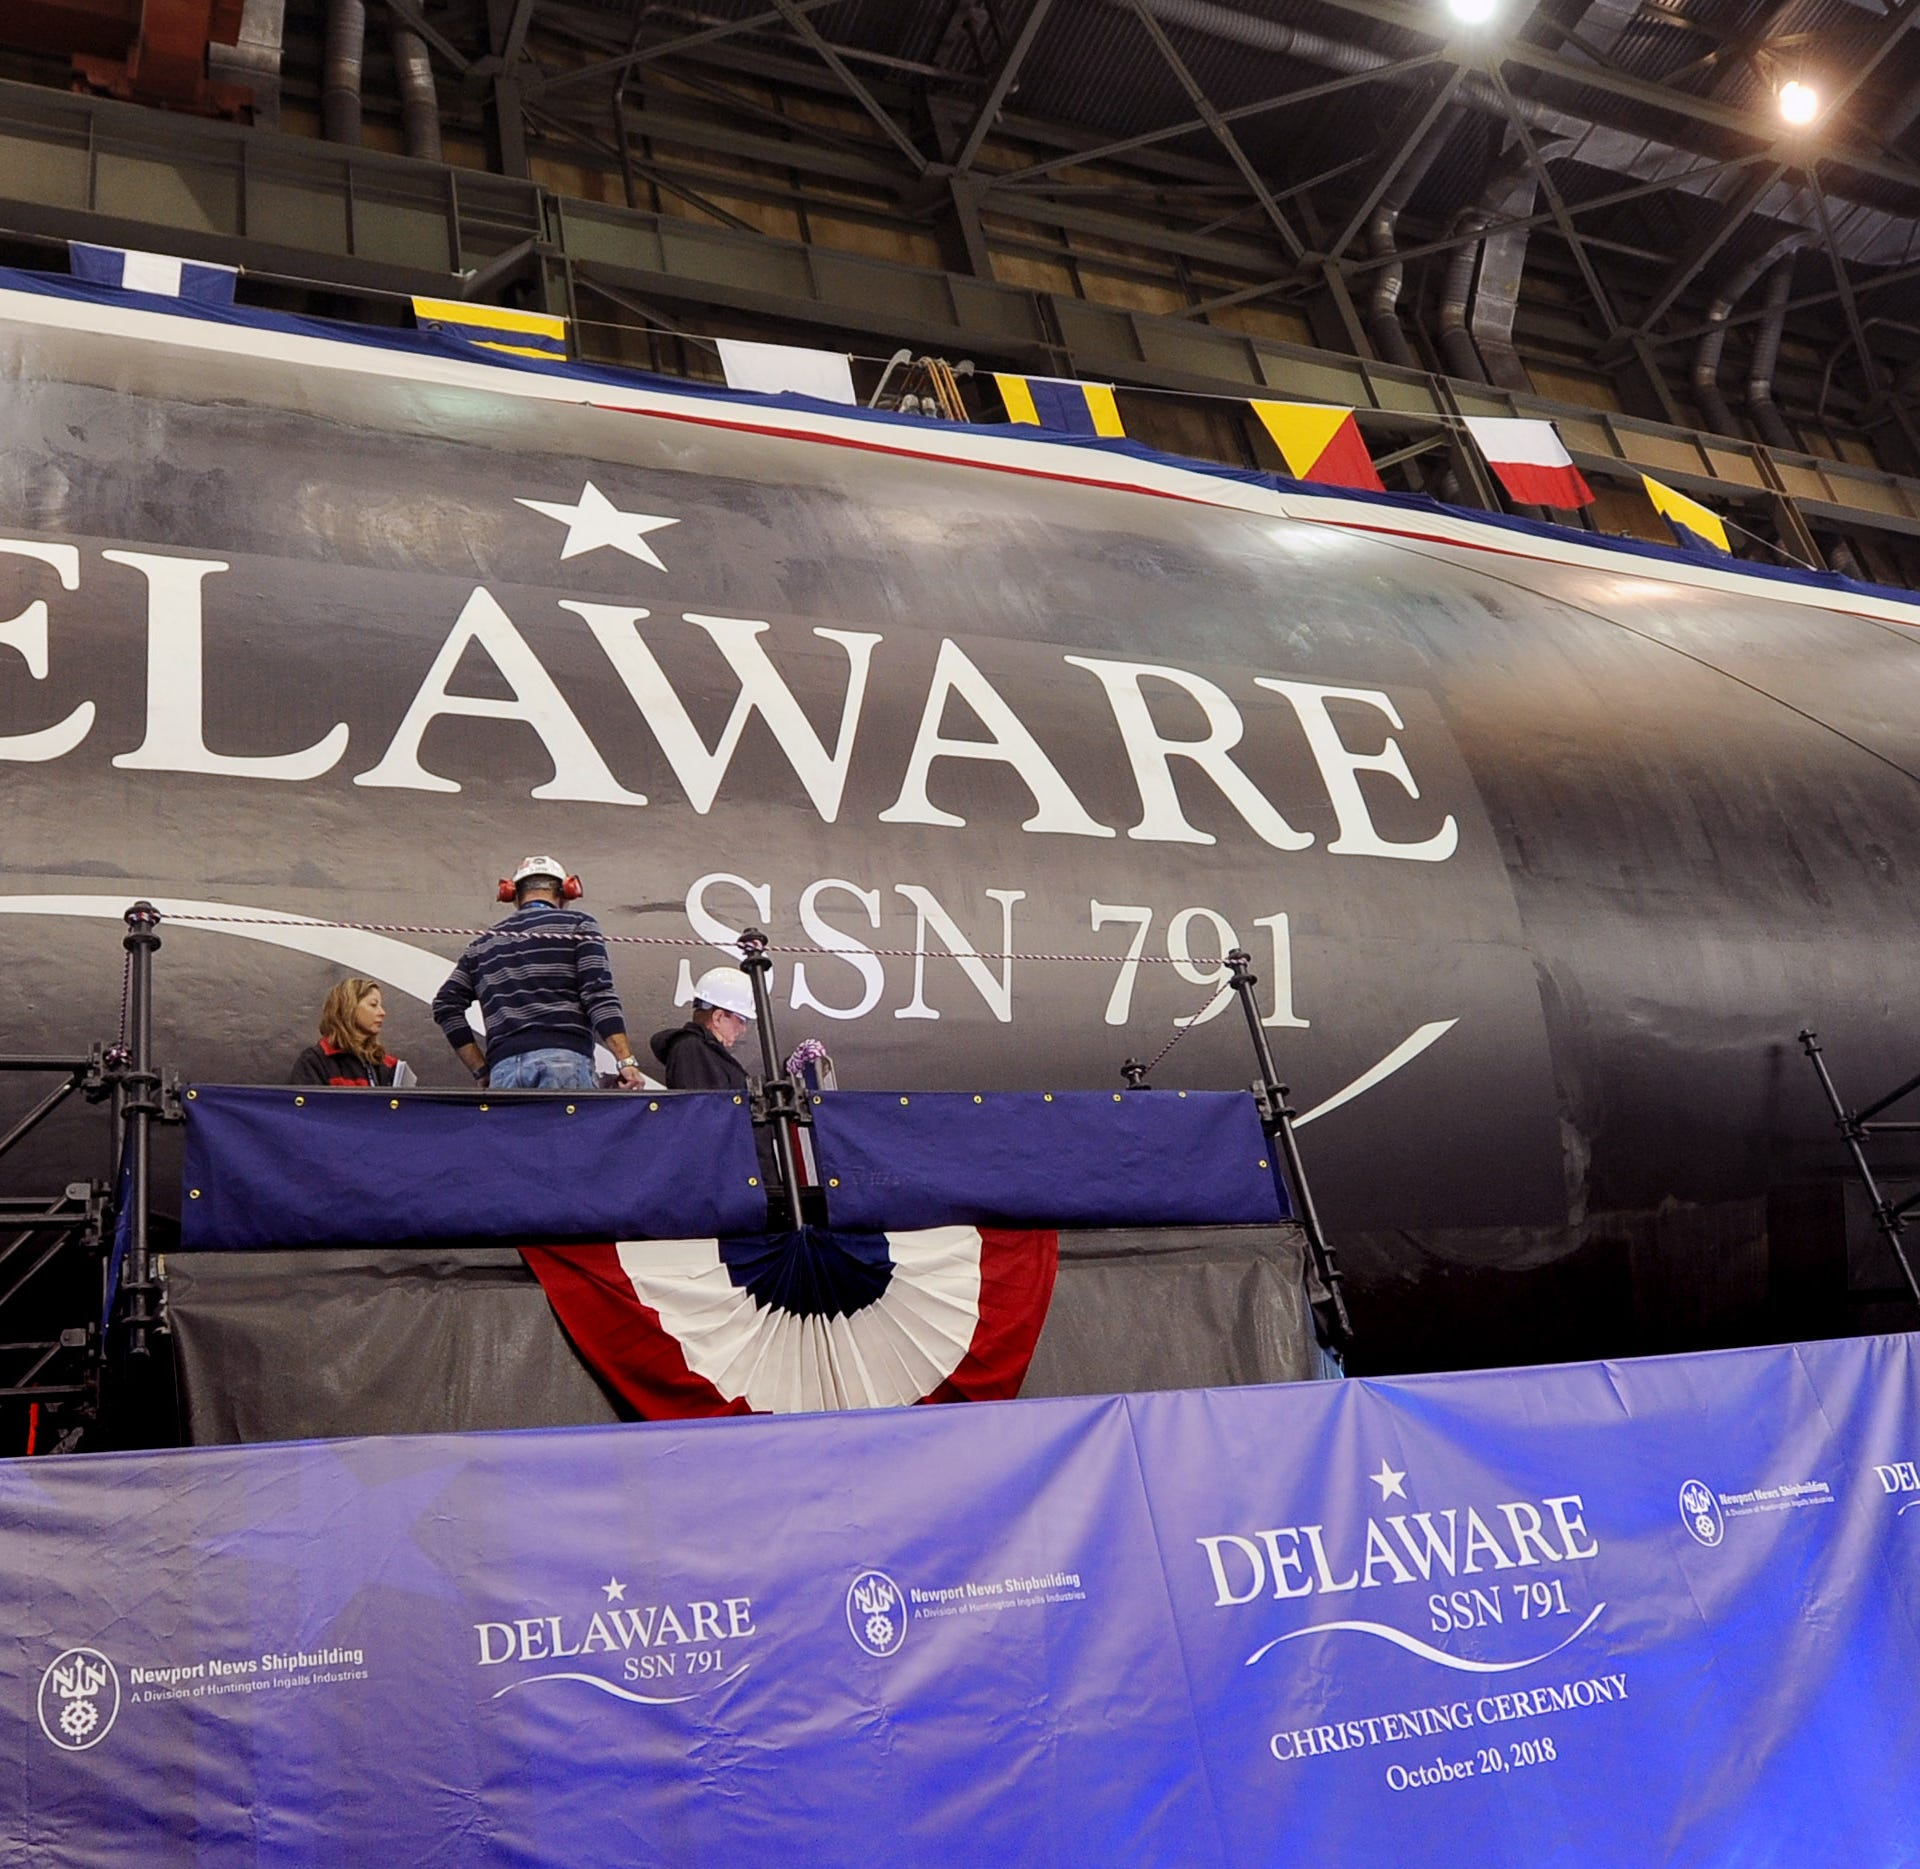 USS Delaware nuclear sub christened on Saturday